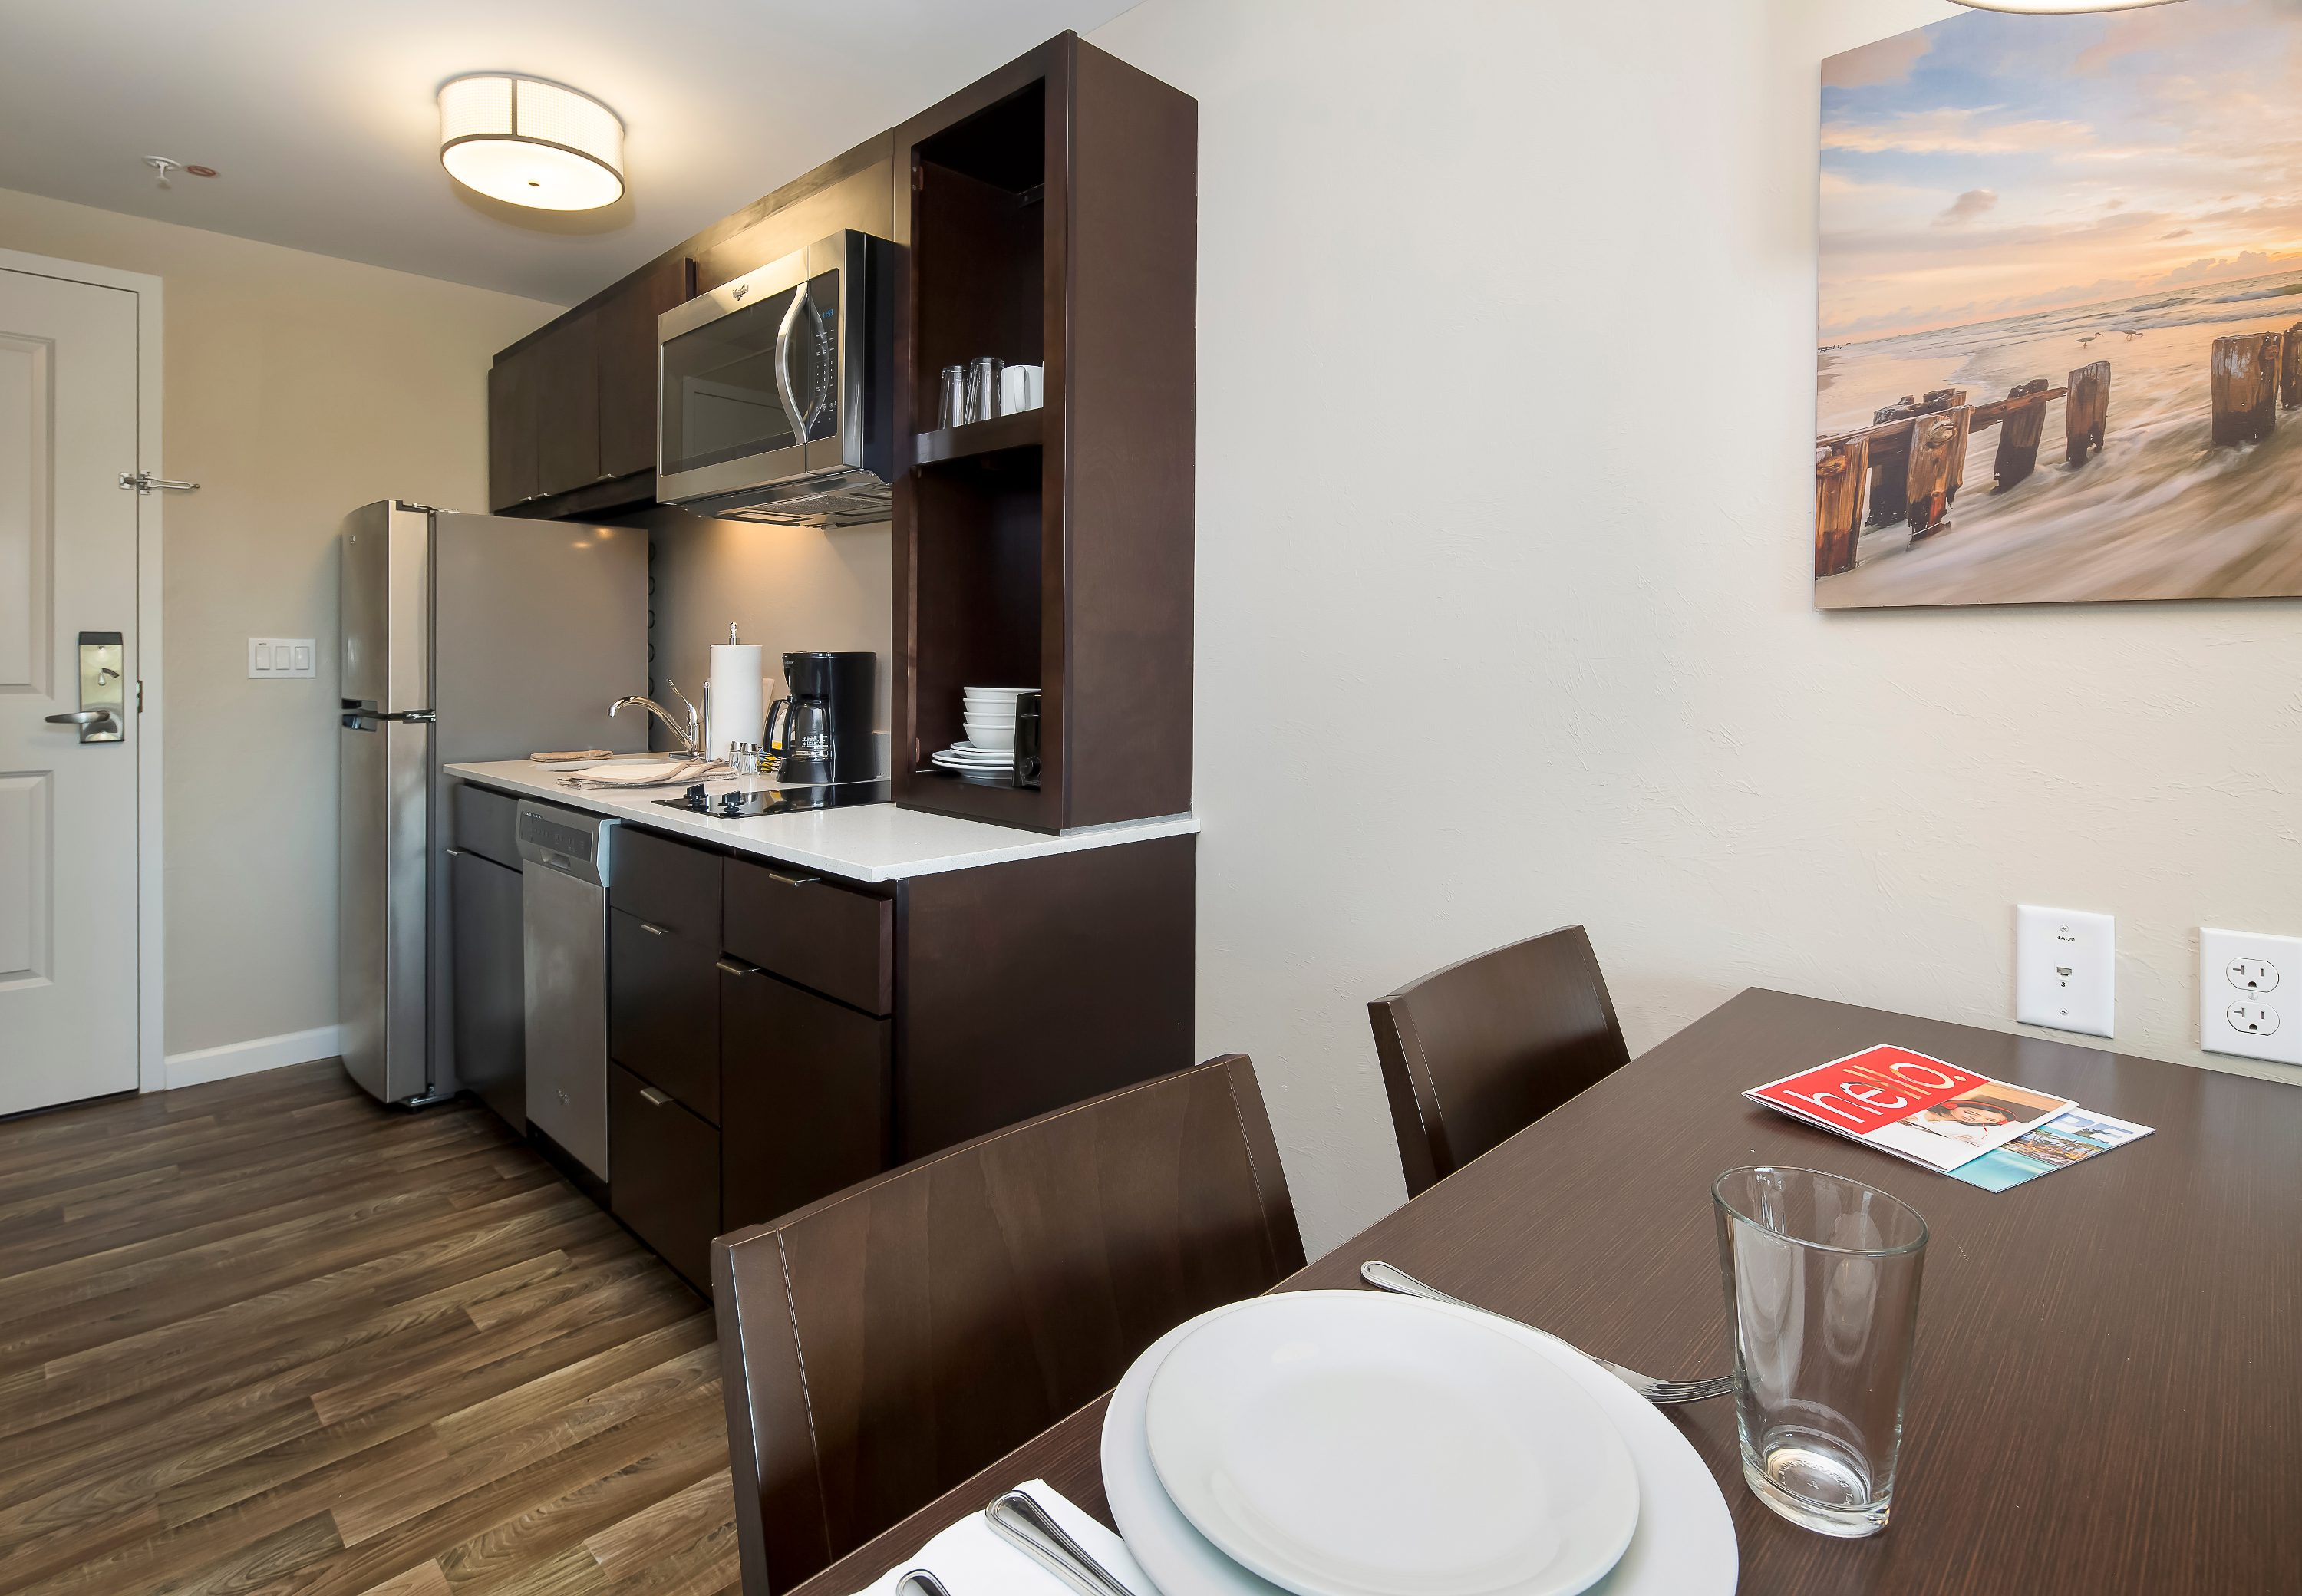 TownePlace Suites by Marriott Fort Myers Estero image 4